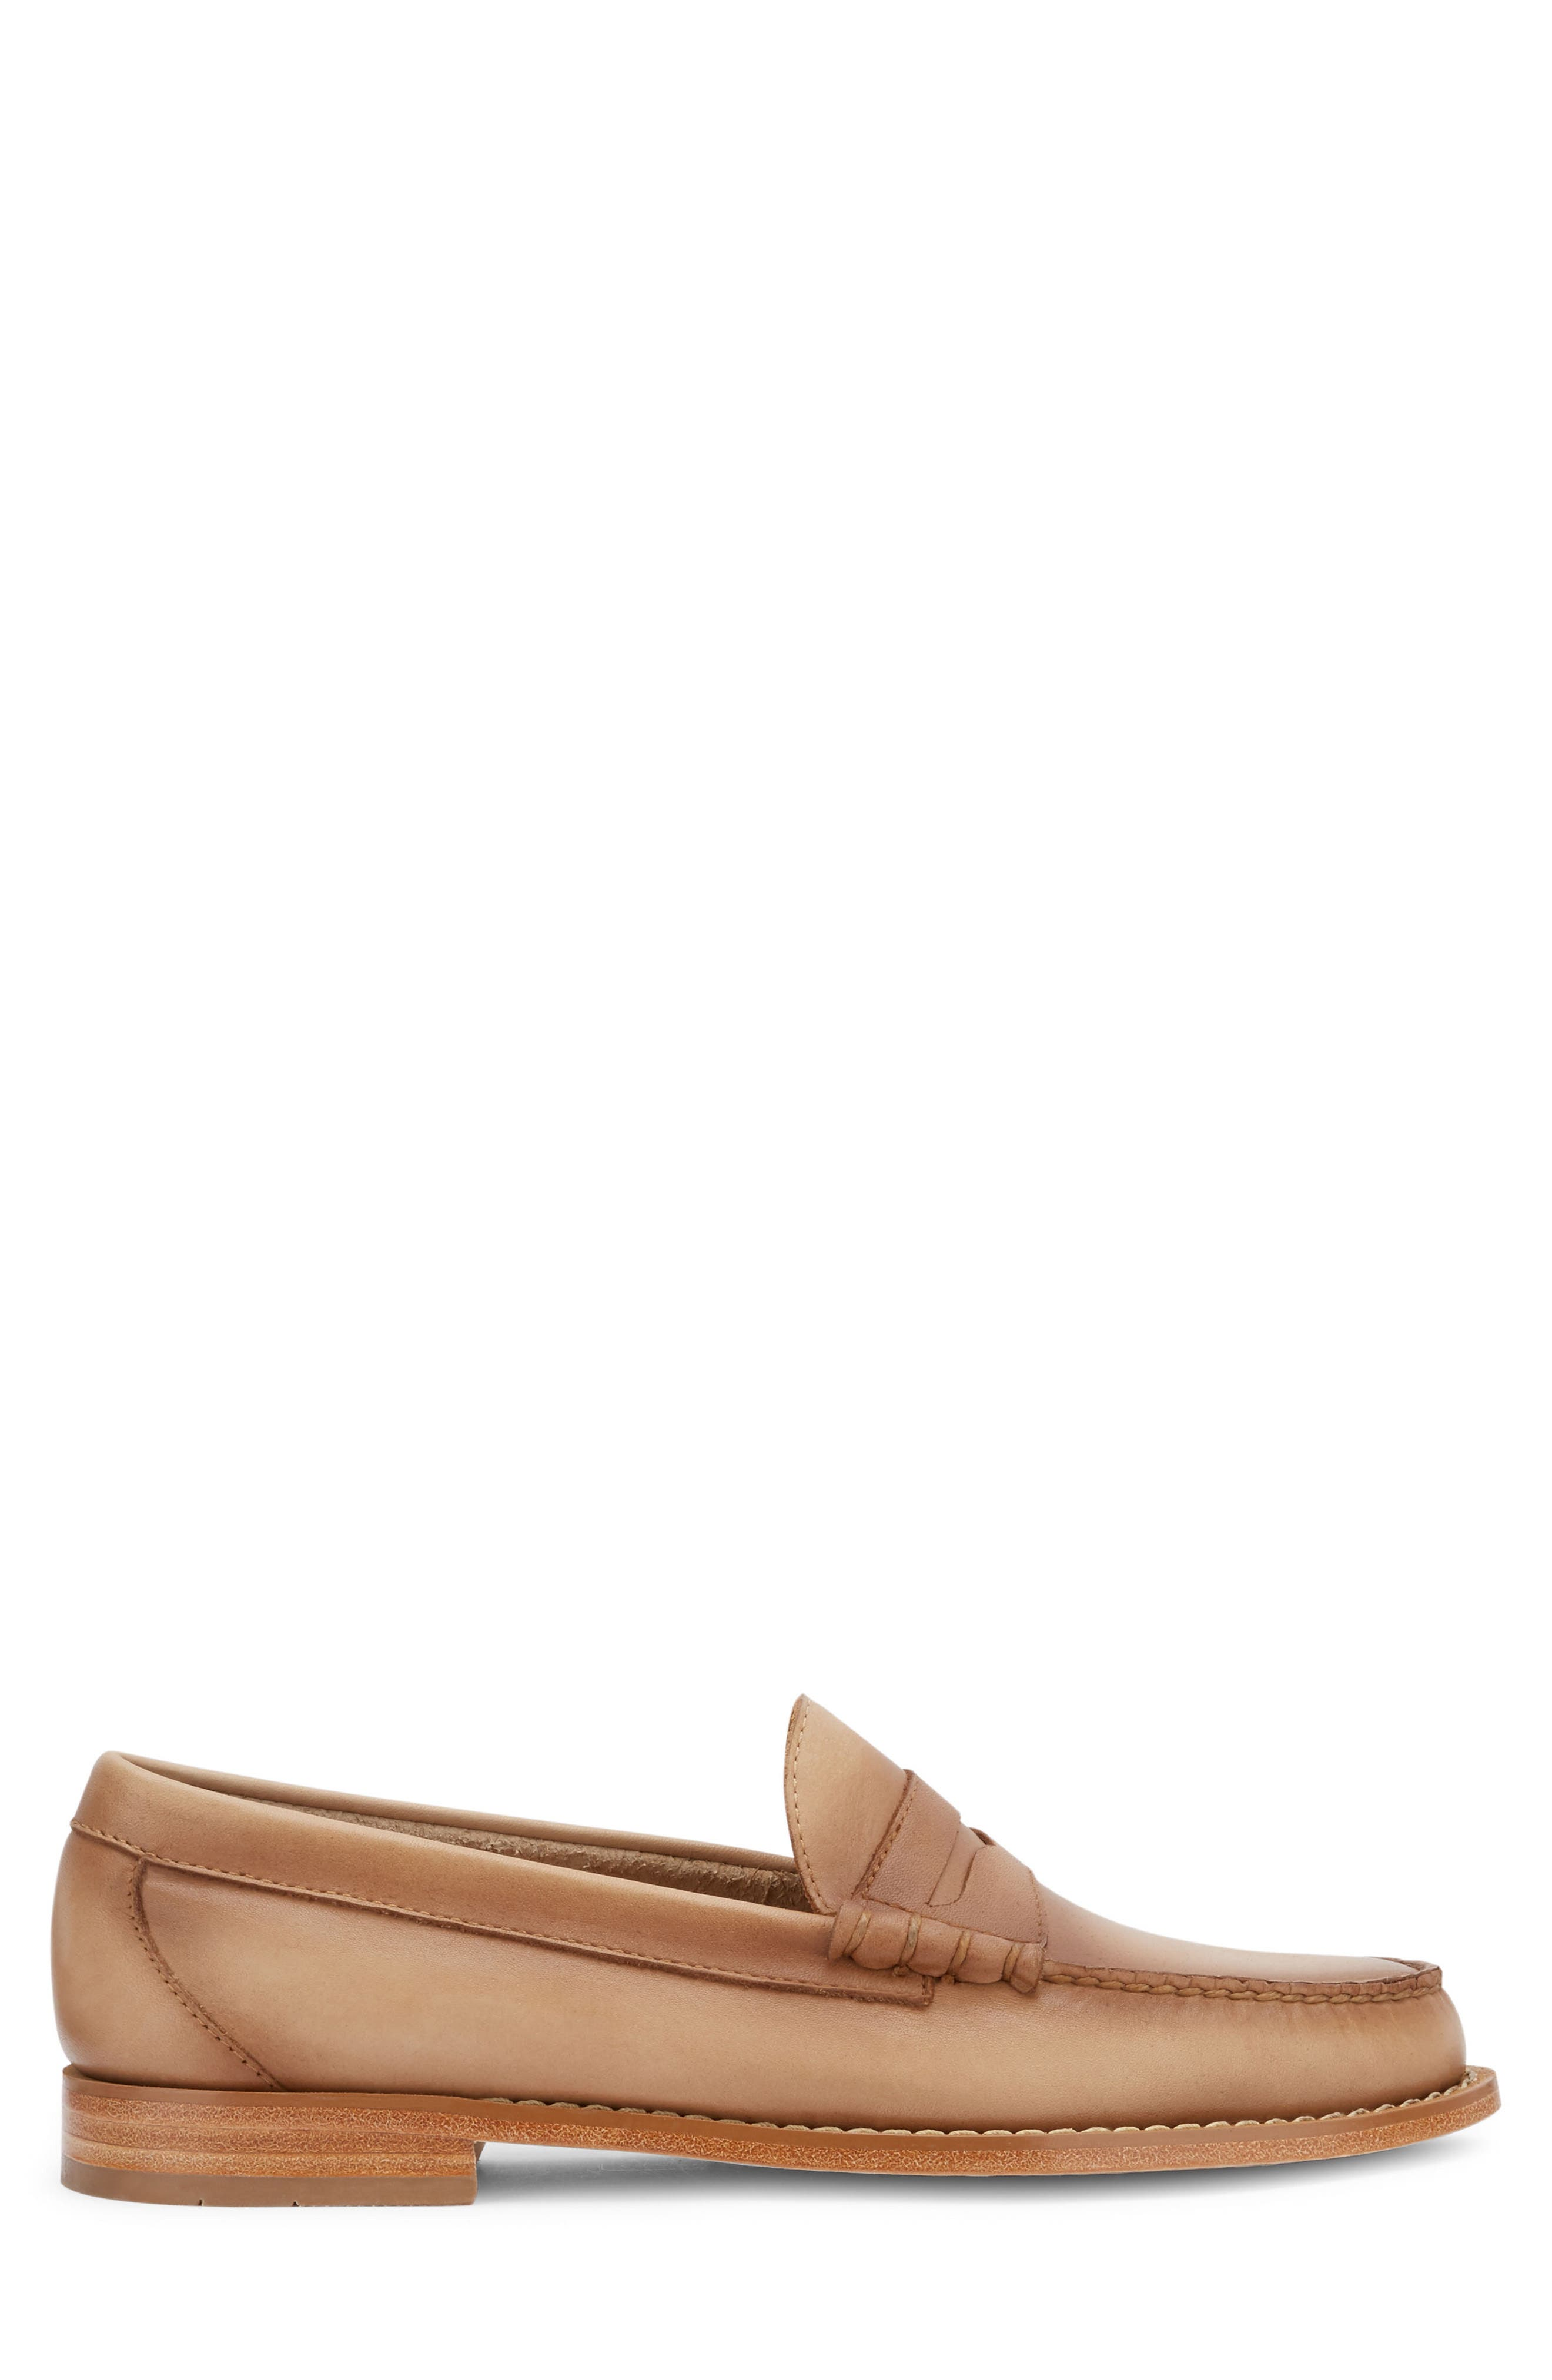 'Larson - Weejuns' Penny Loafer,                             Alternate thumbnail 3, color,                             VACHETTA LEATHER